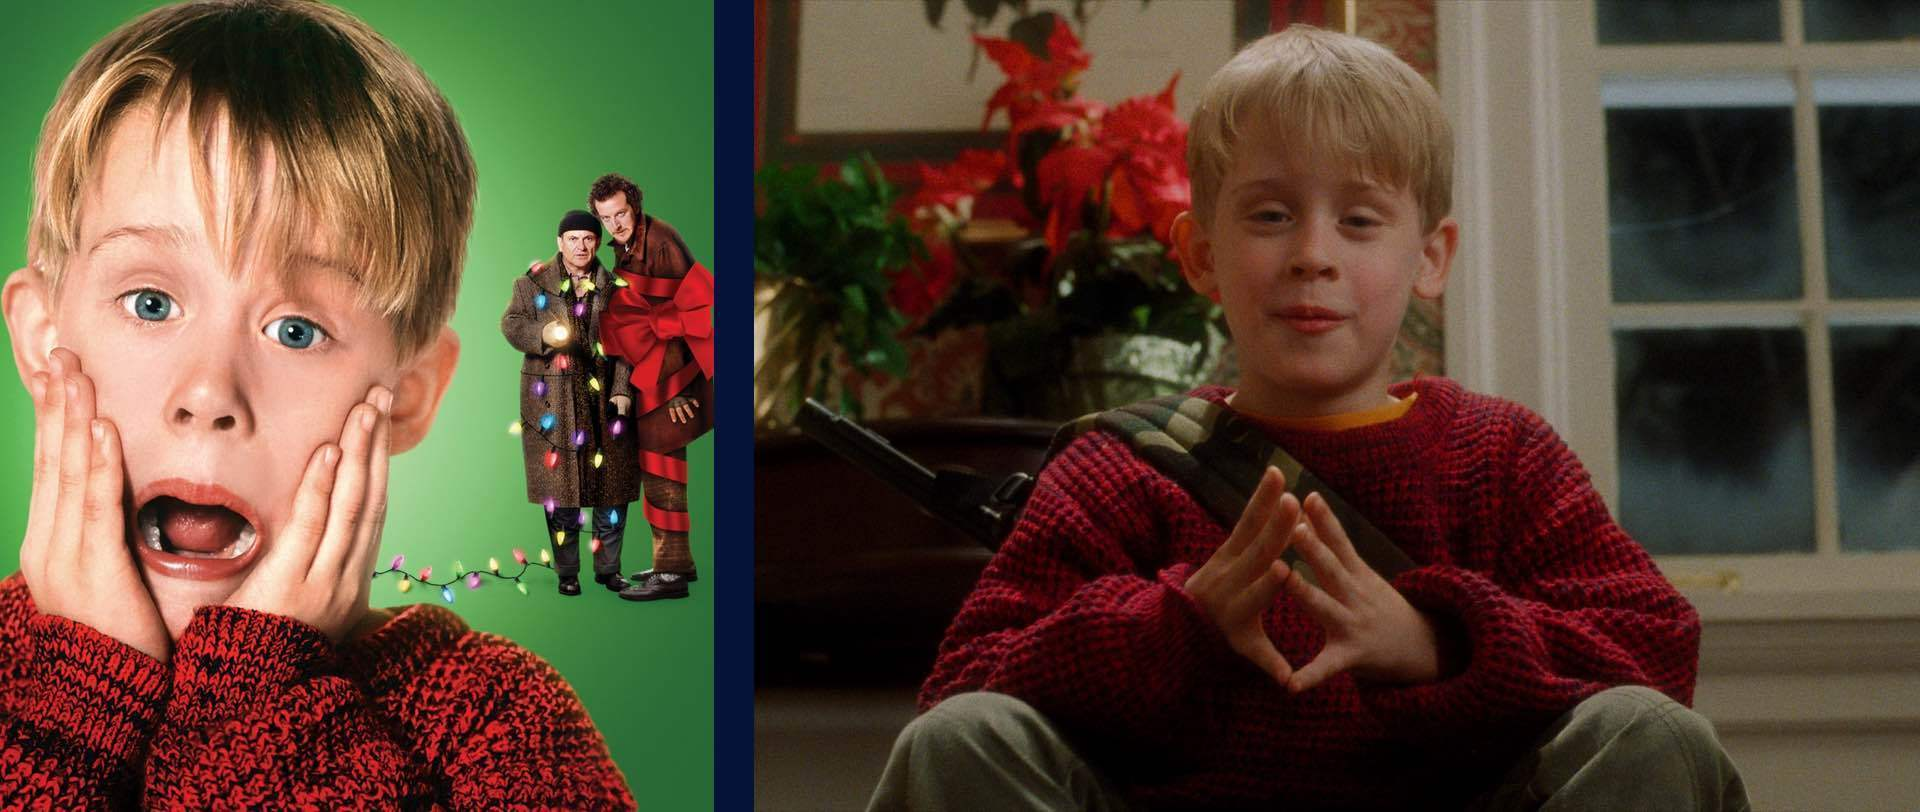 A still image from Home Alone